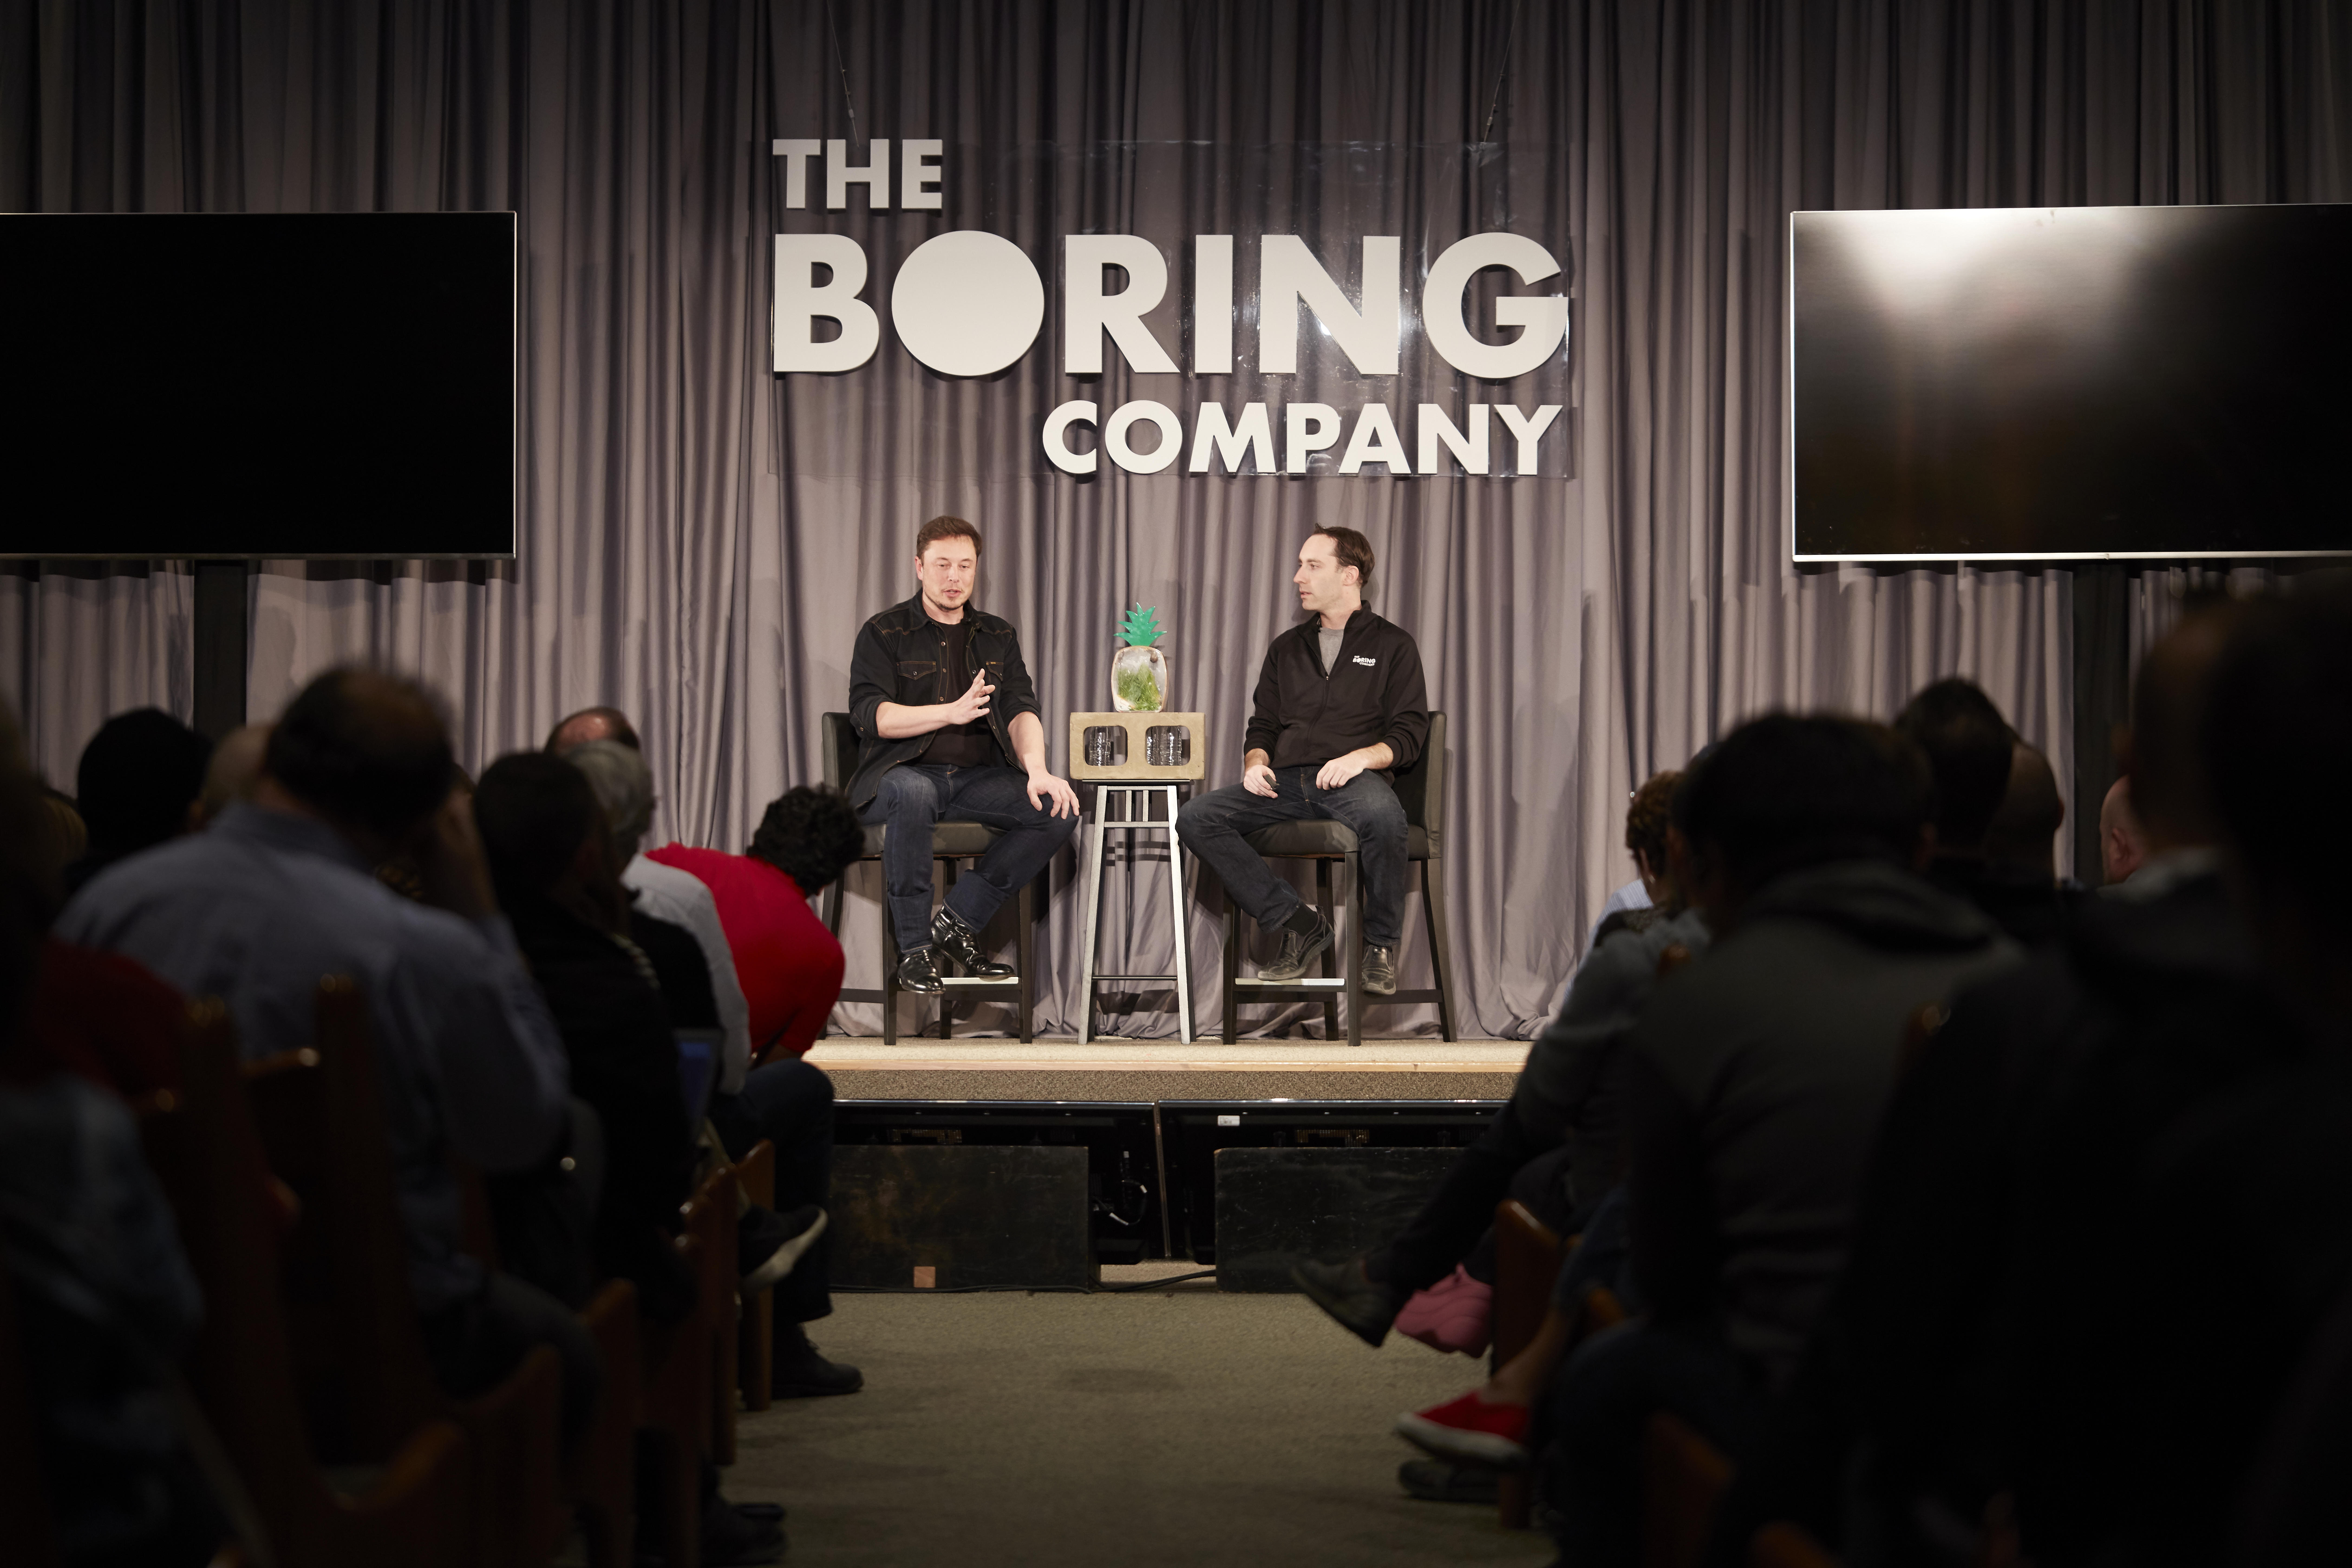 Boring Company founder Elon Musk and director Steve Davis speak at the Leo Baeck Temple in Los Angeles.